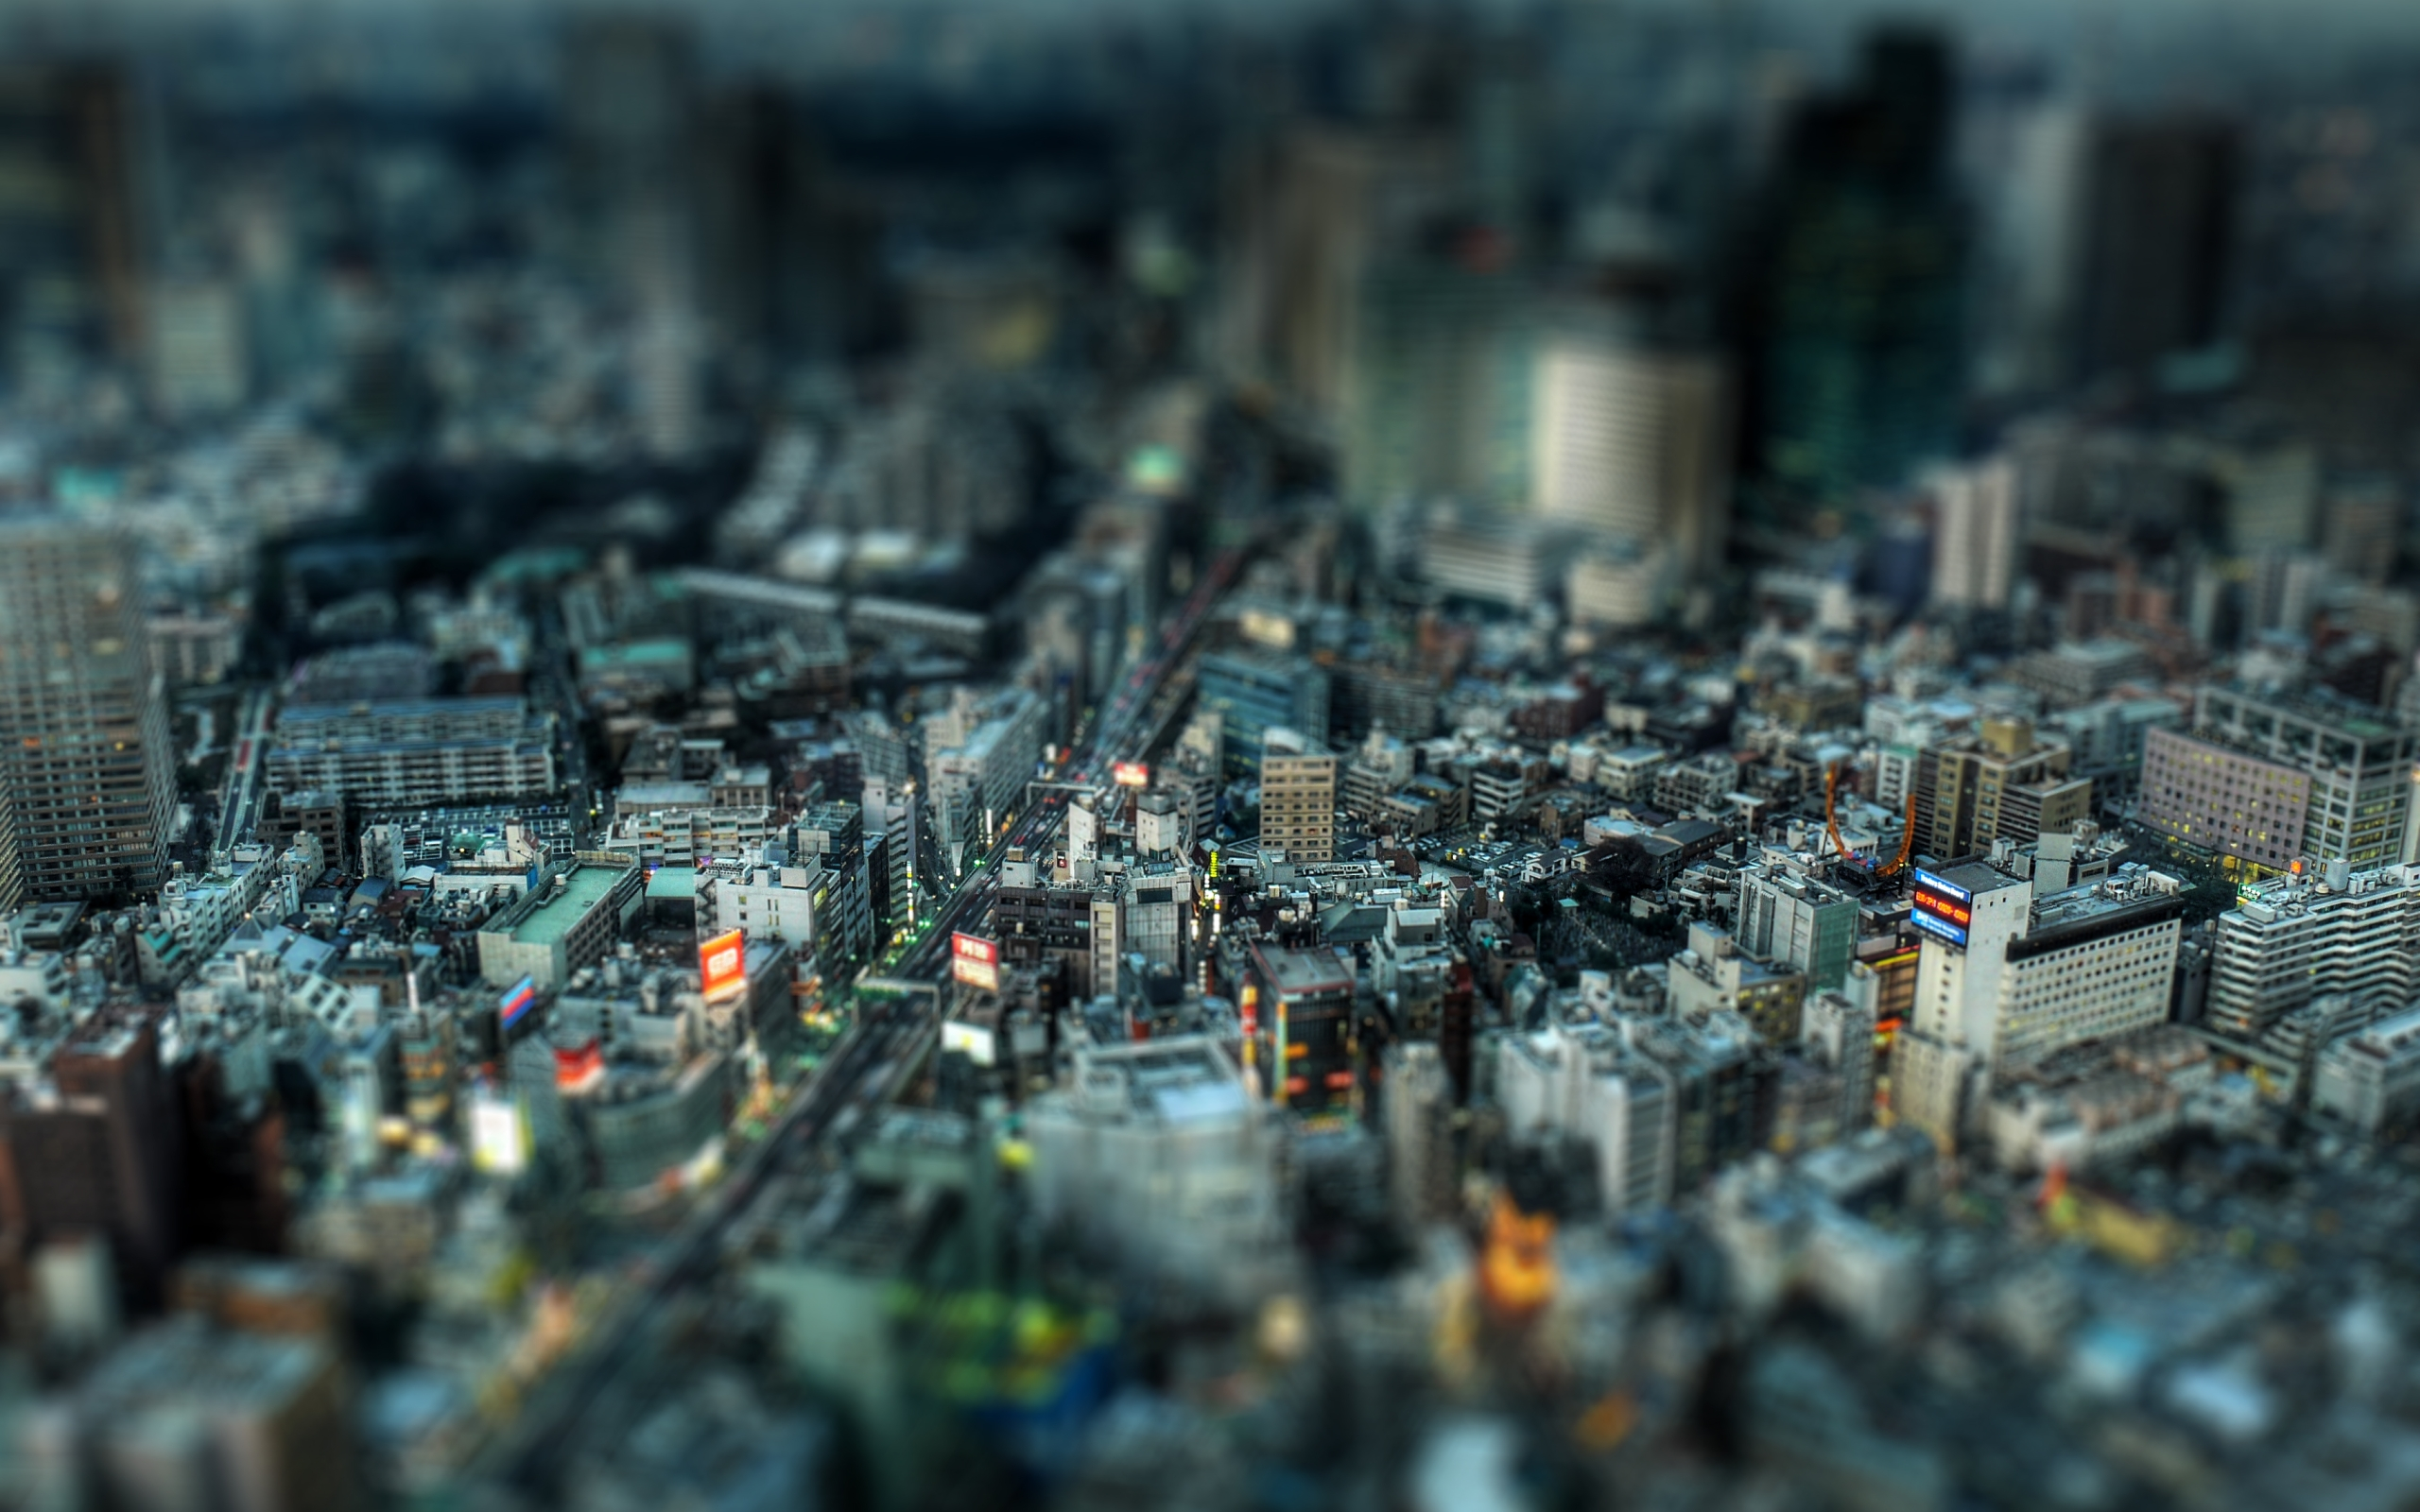 tilt shift effect toy city